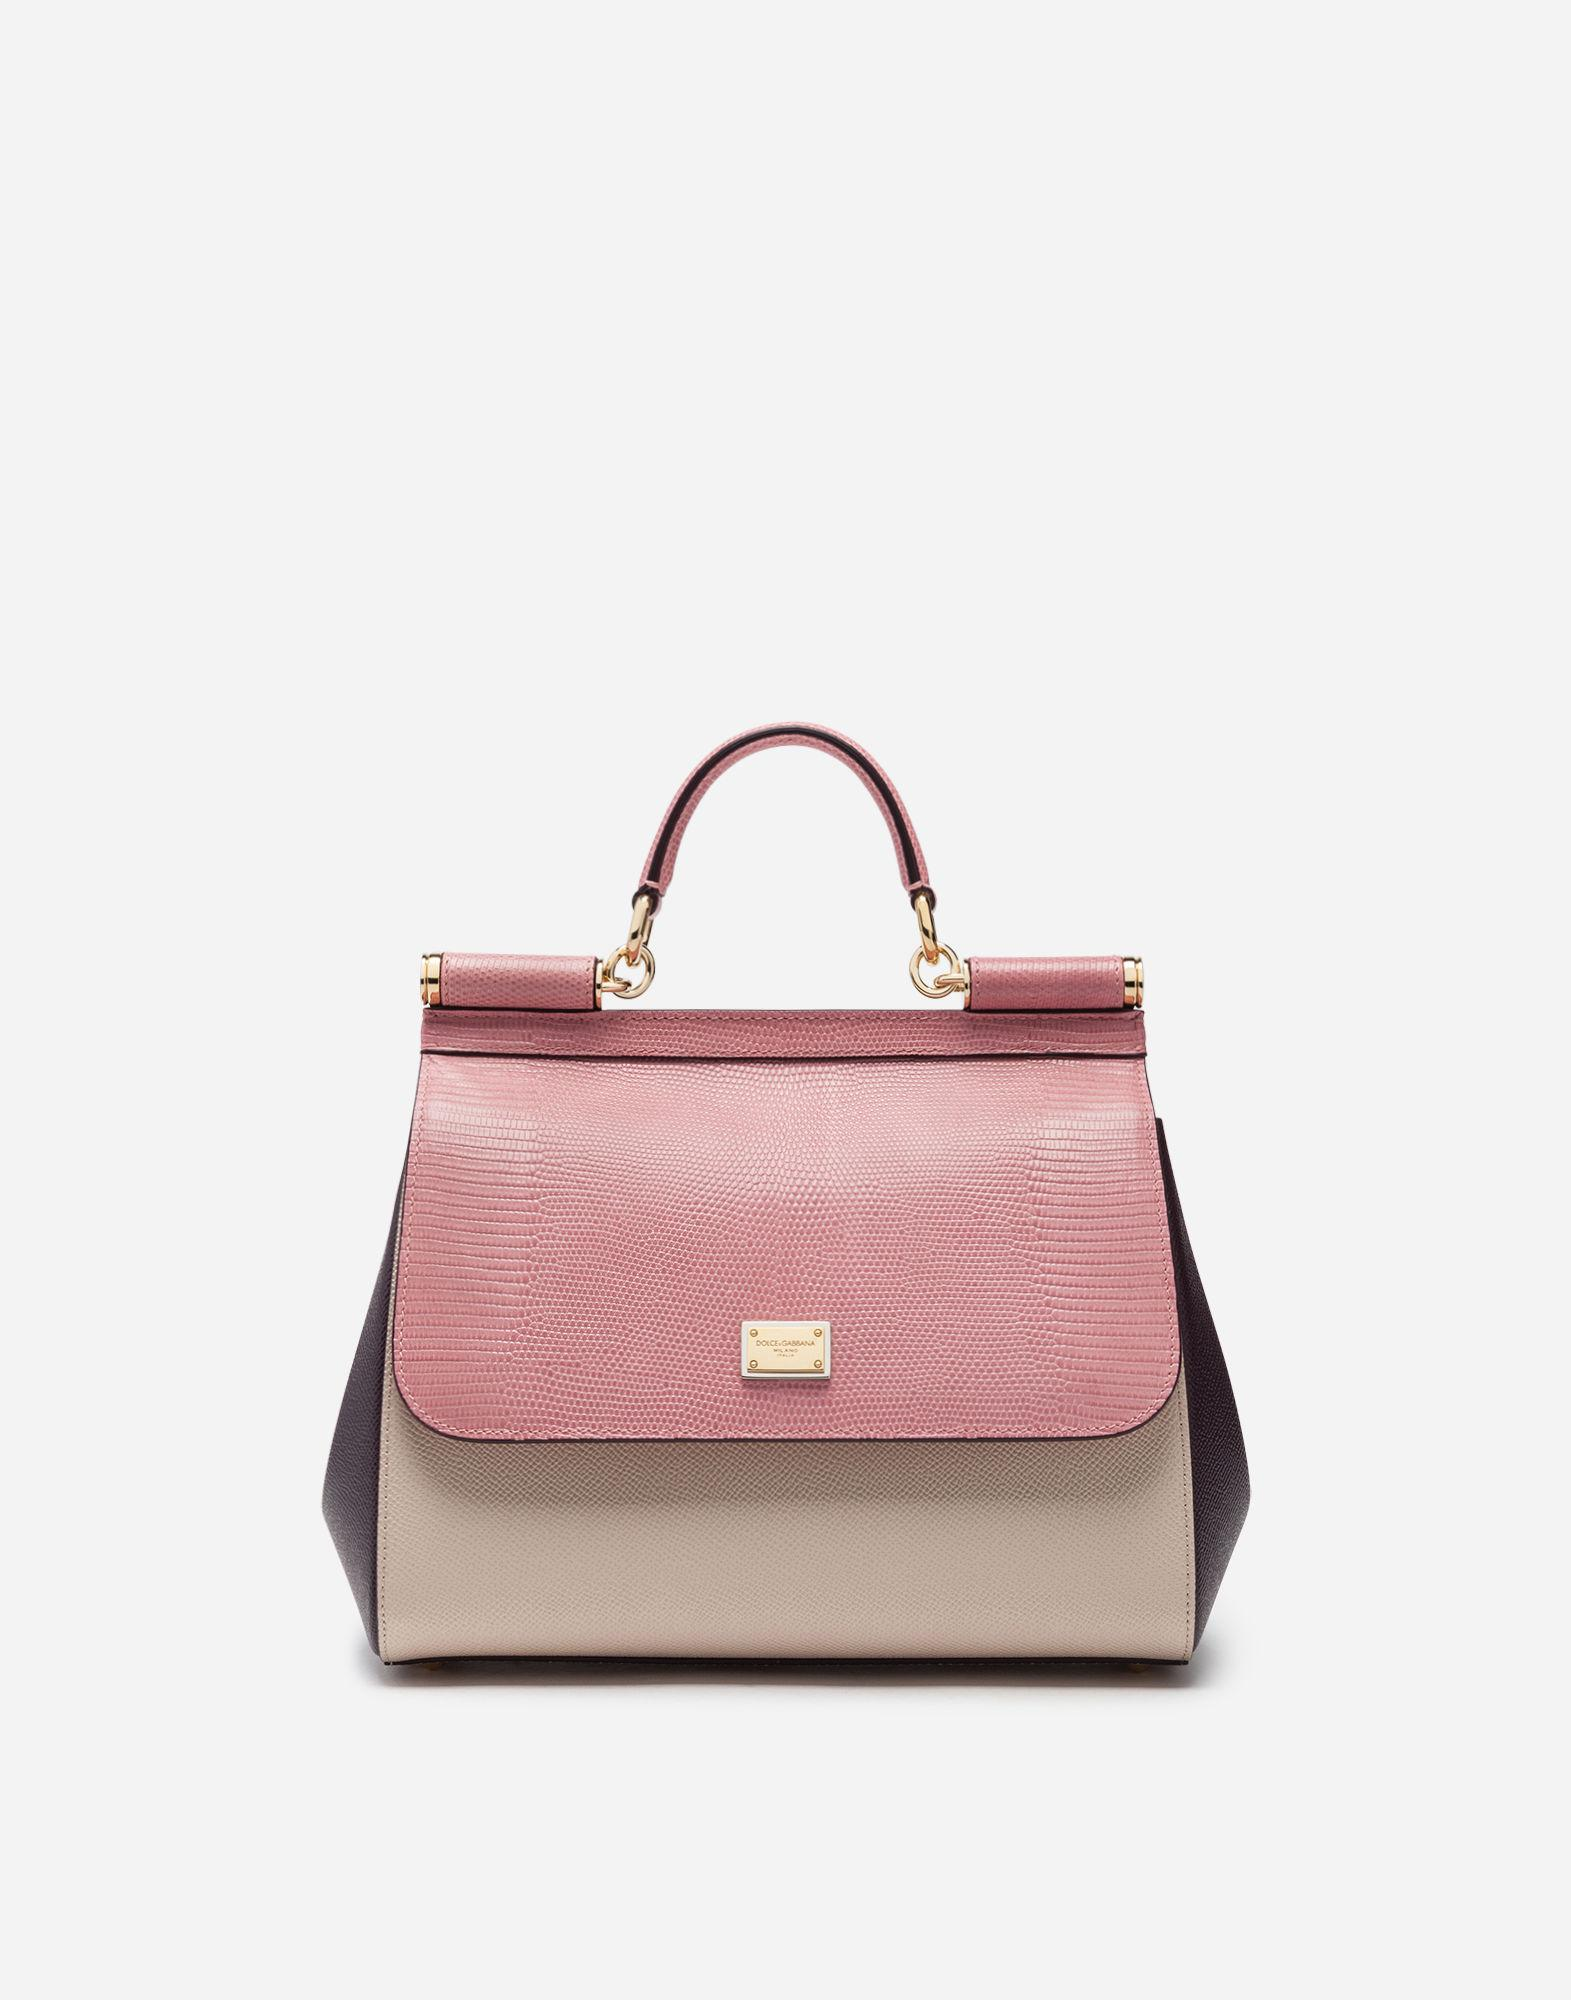 7a586d94ad Lyst - Dolce   Gabbana Medium Sicily Bag In Mix Of Materials in Pink